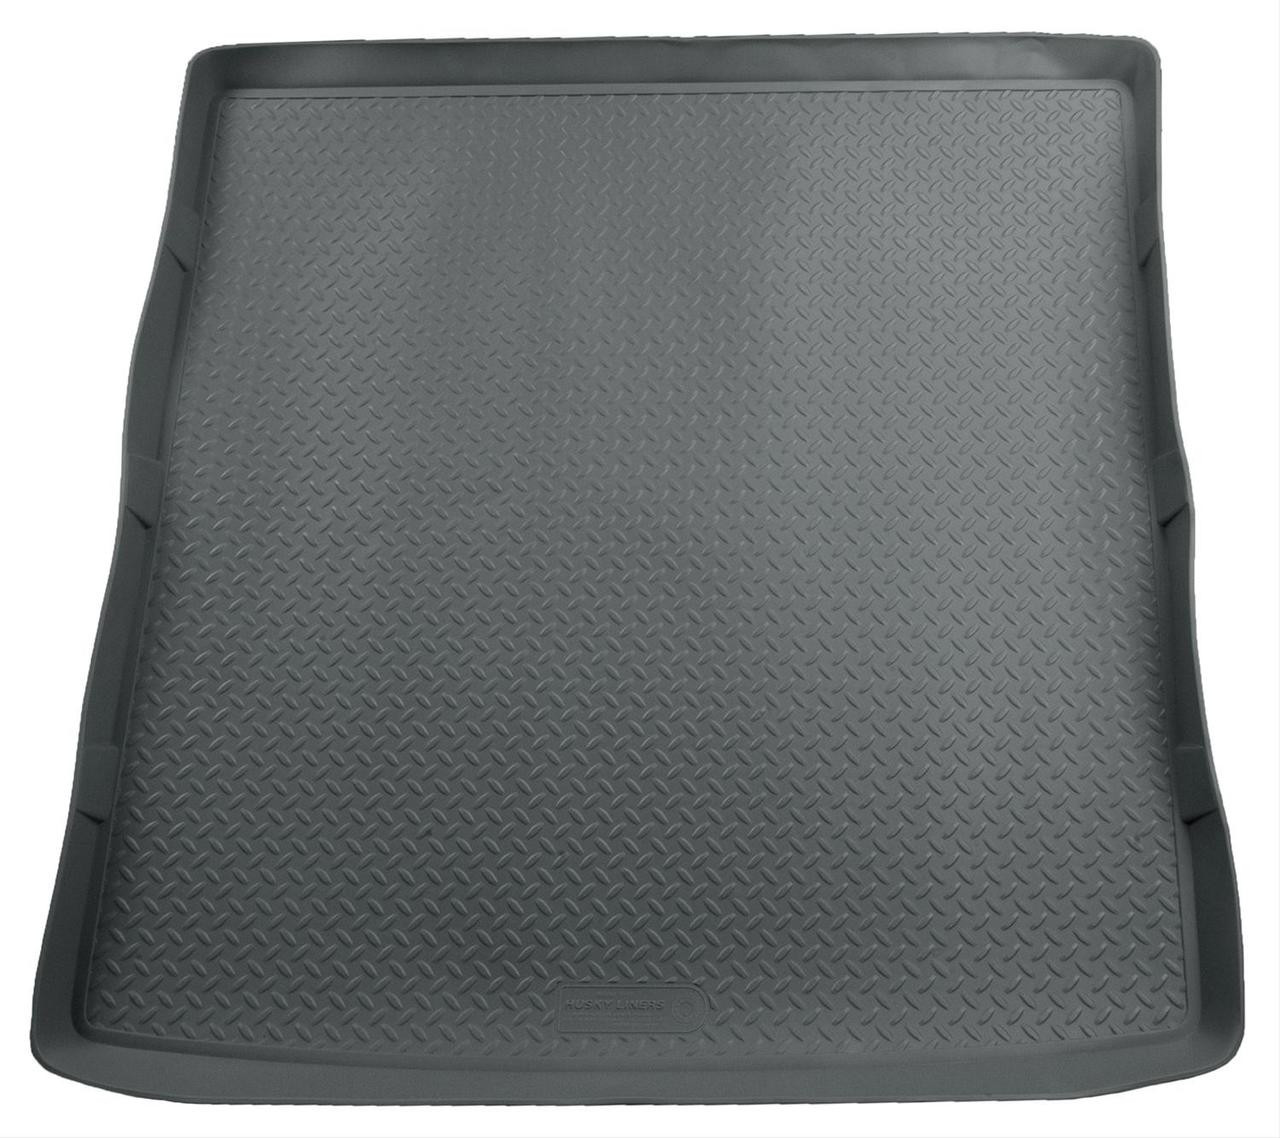 07-16 ACADIA/07-09 OUTLOOK (BEHIND 2ND SEAT - FITS OVER FOLDED FLAT 3RD ROW SEAT) REAR LINER GREY